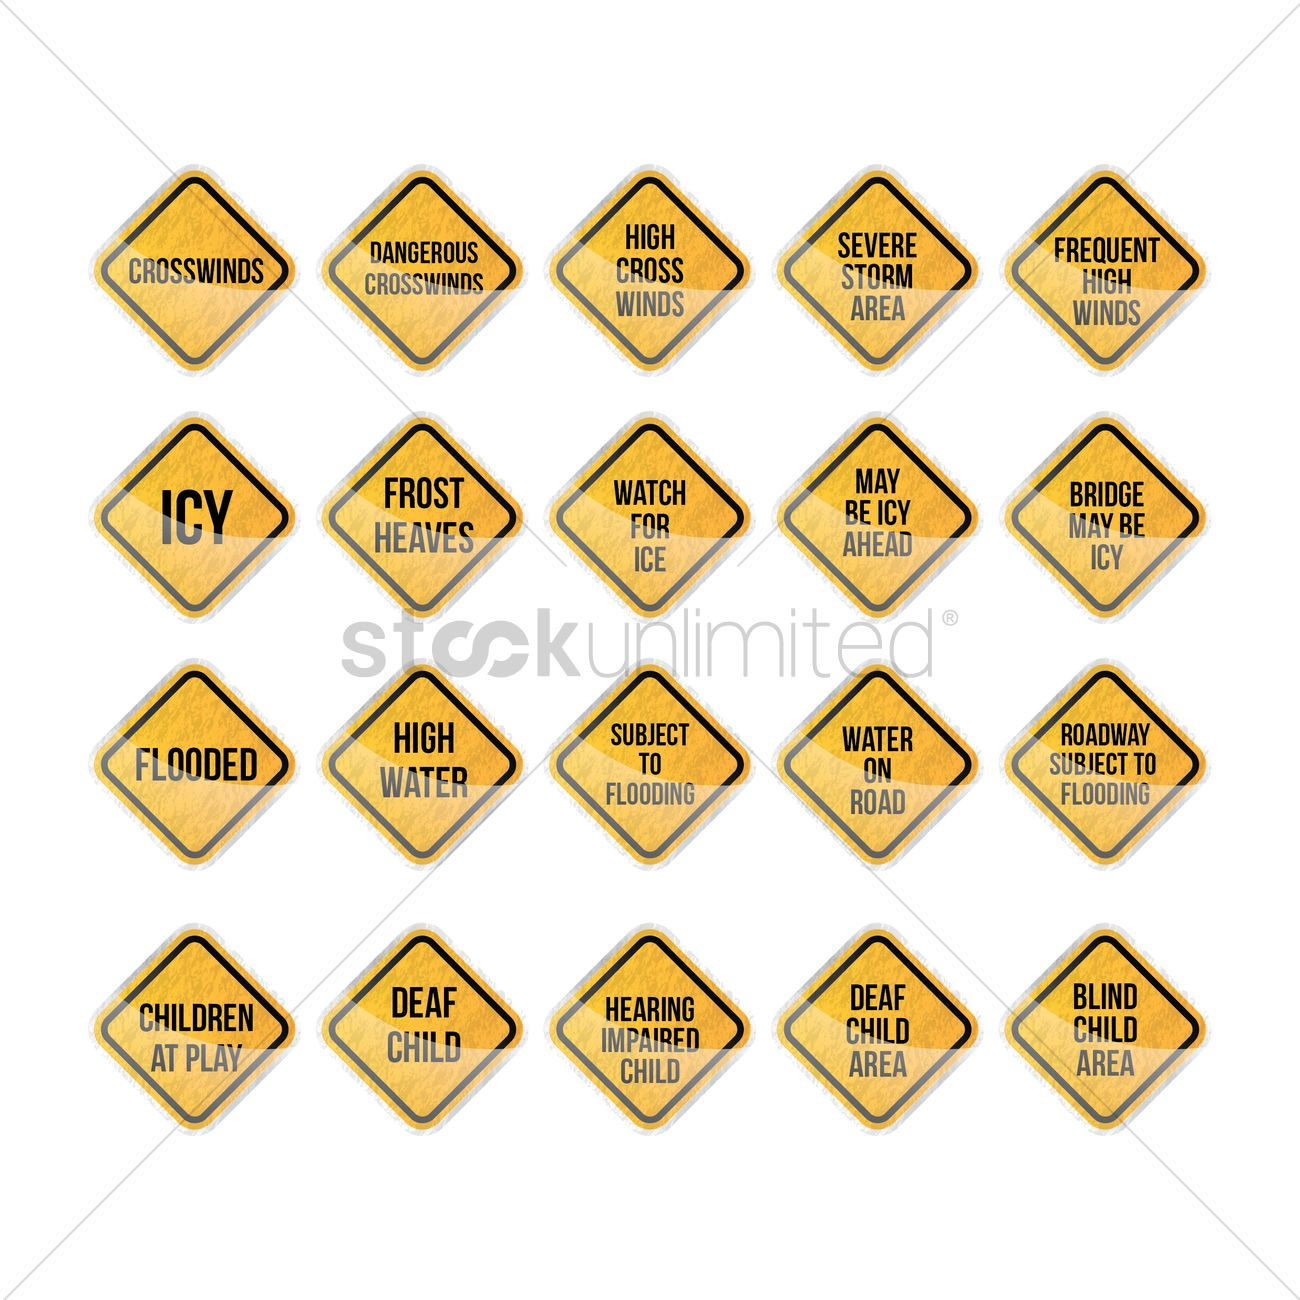 Bridge May Be Icy Is What Sign Said >> Warning Signs Collection Vector Image 1569365 Stockunlimited